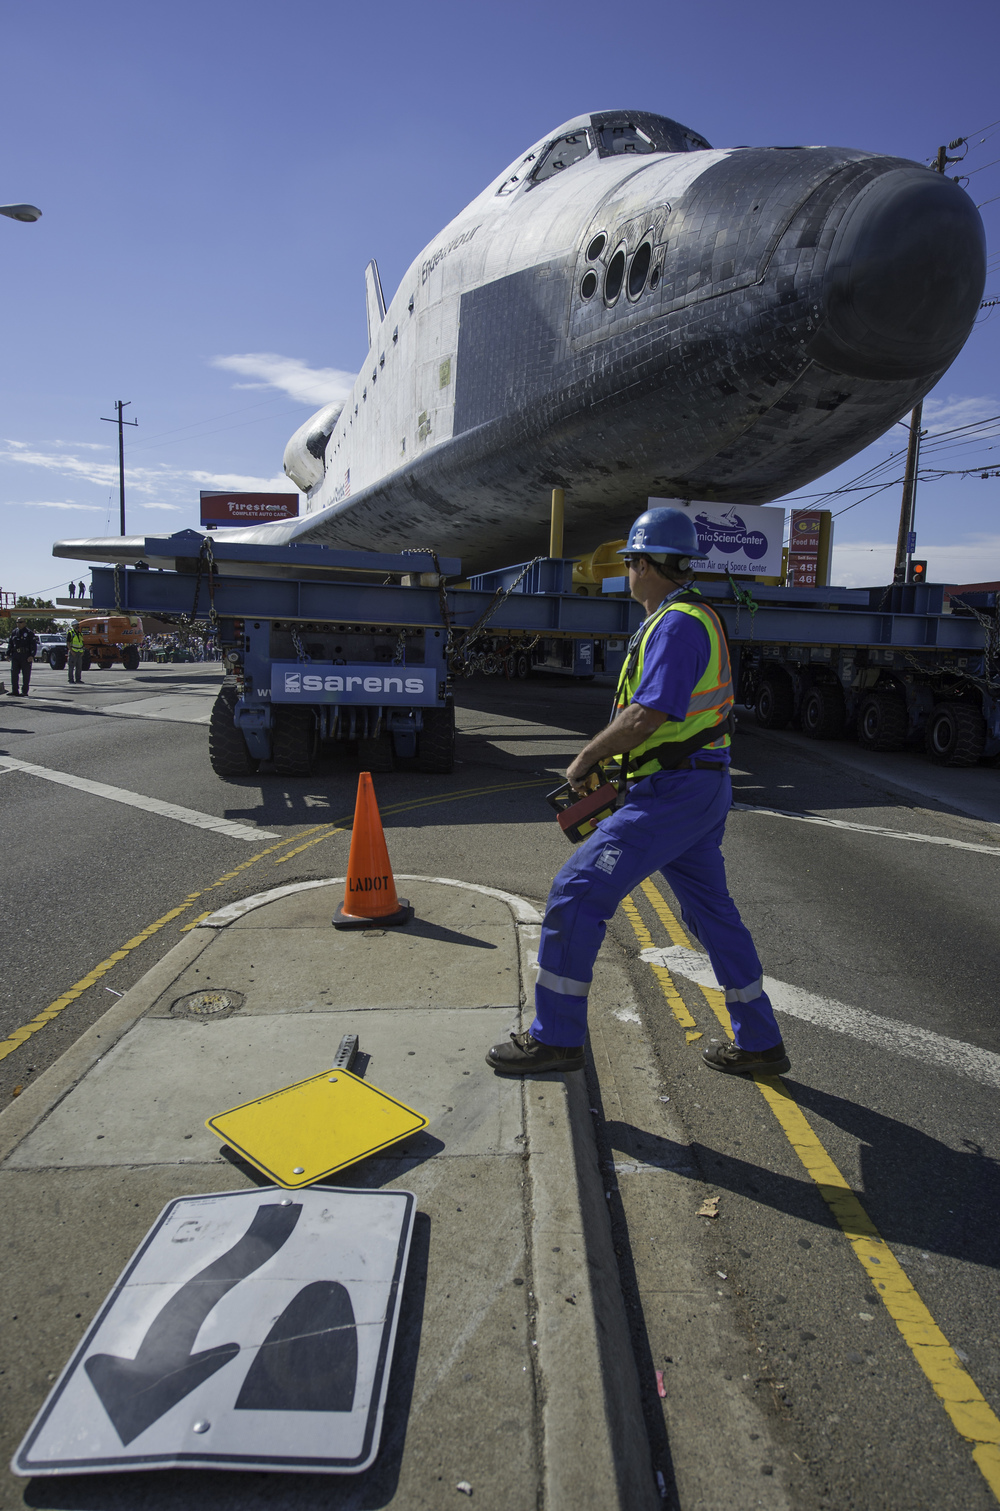 The driver of the Over Land Transporter (OLT) is seen as he maneuvers the space shuttle Endeavour on the streets of Los Angeles as it heads to its new home at the California Science Center, Friday, Oct. 12, 2012. Endeavour, built as a replacement for space shuttle Challenger, completed 25 missions, spent 299 days in orbit, and orbited Earth 4,671 times while traveling 122,883,151 miles. Beginning Oct. 30, the shuttle will be on display in the CSC's Samuel Oschin Space Shuttle Endeavour Display Pavilion, embarking on its new mission to commemorate past achievements in space and educate and inspire future generations of explorers. (NASA/Carla Cioffi)